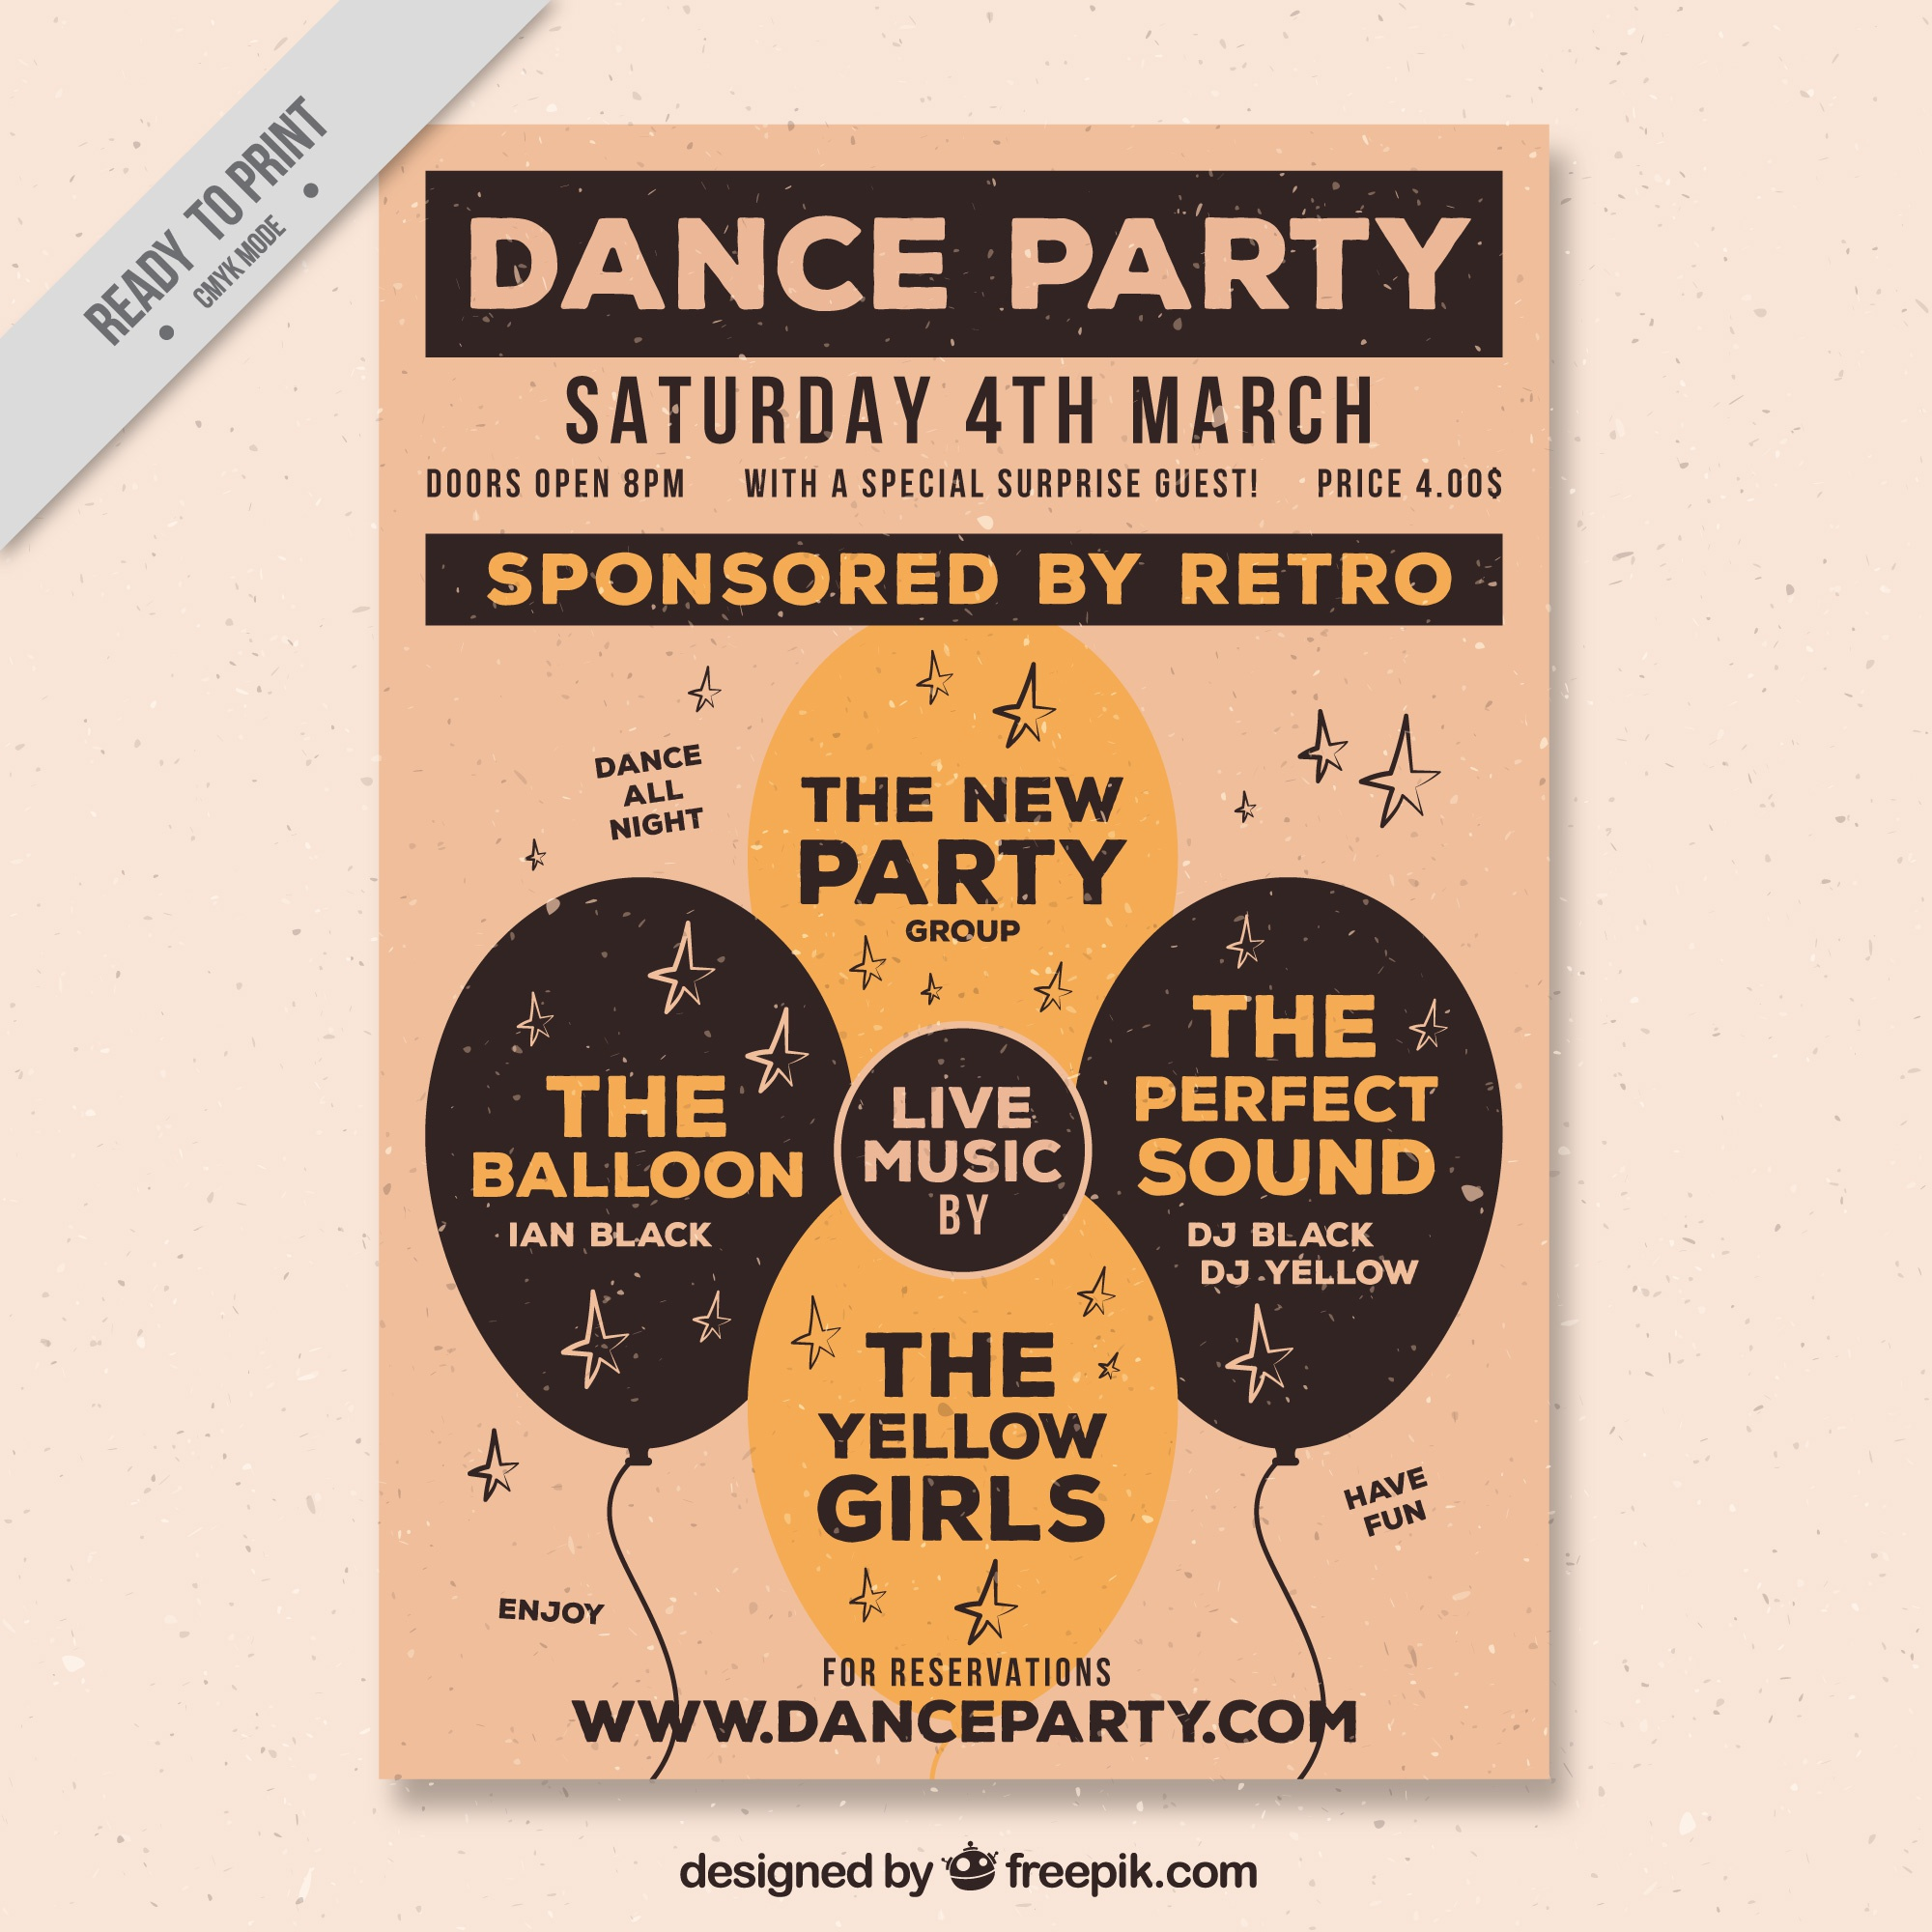 Vintage party poster with balloons